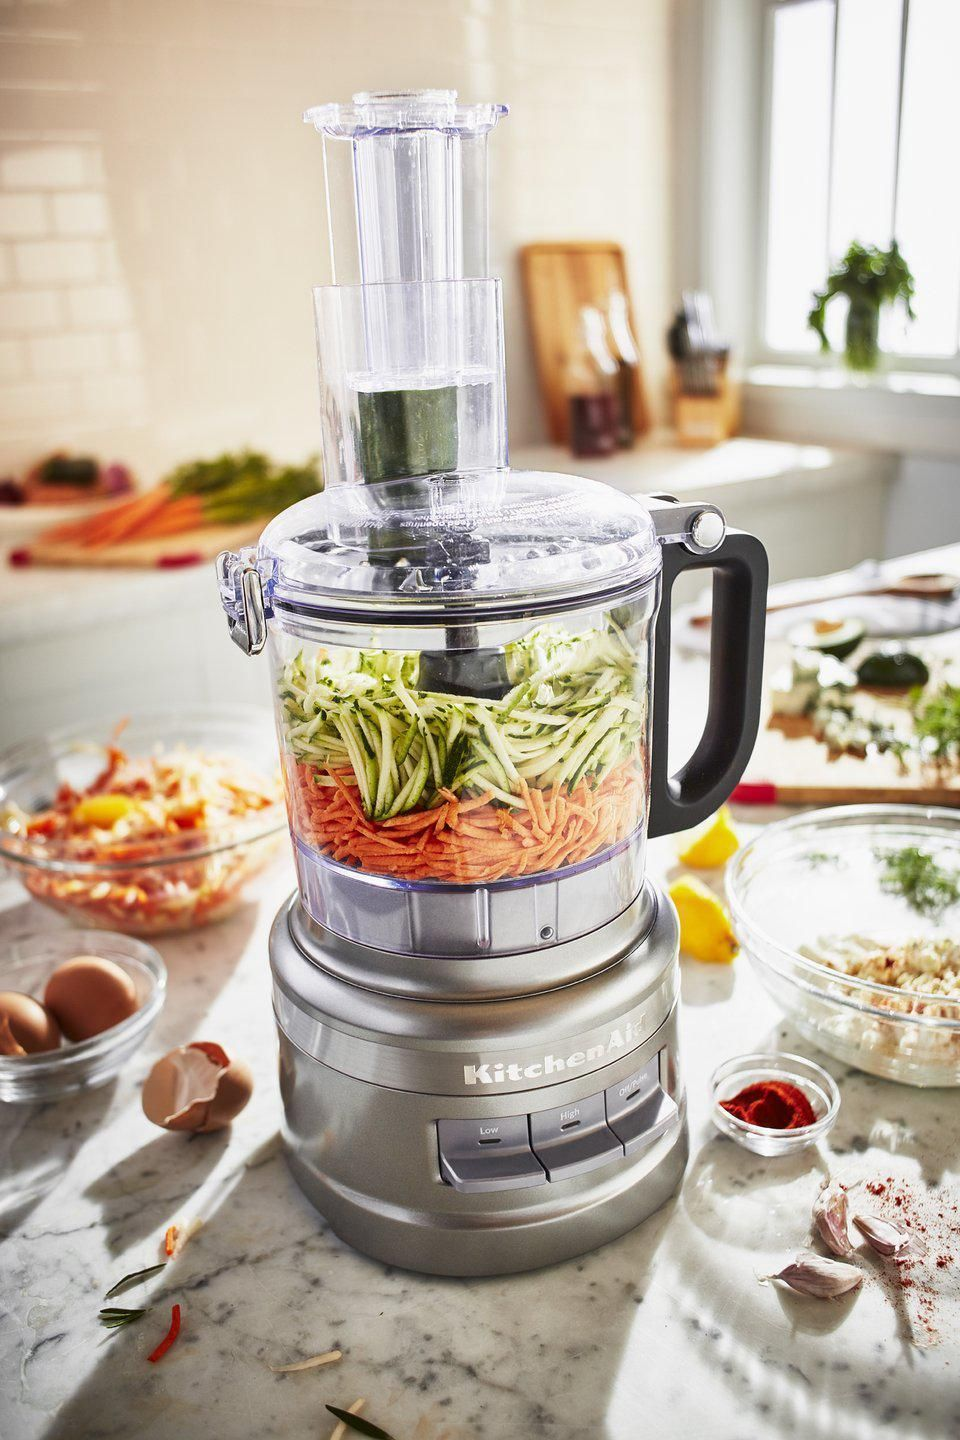 Kitchenaid 7 cup food processor silver other colors